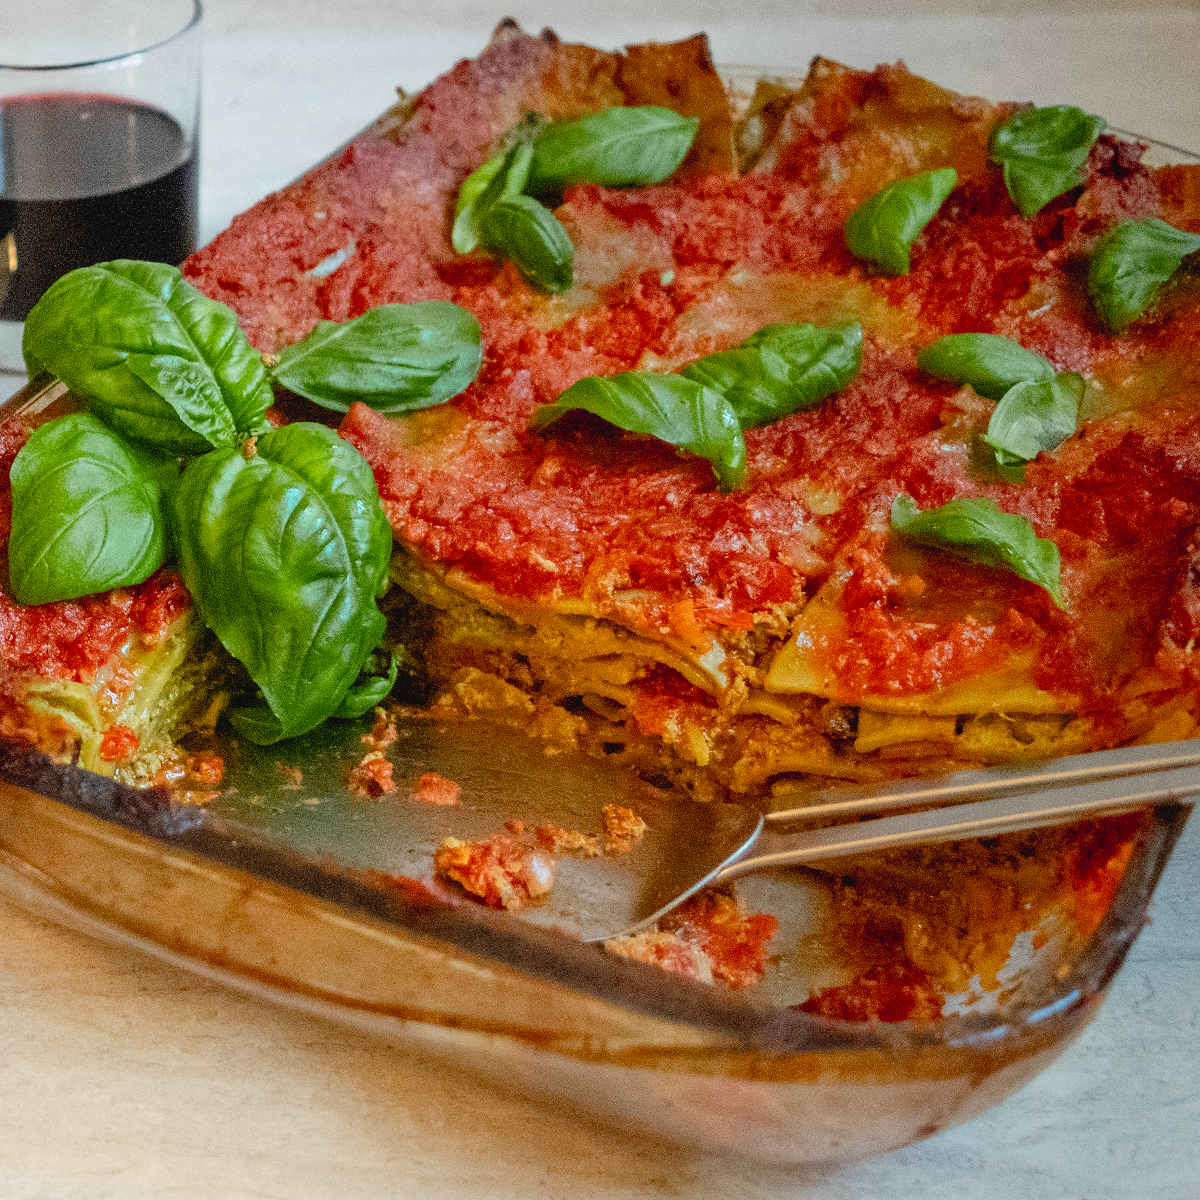 vegan lasagna and red wine